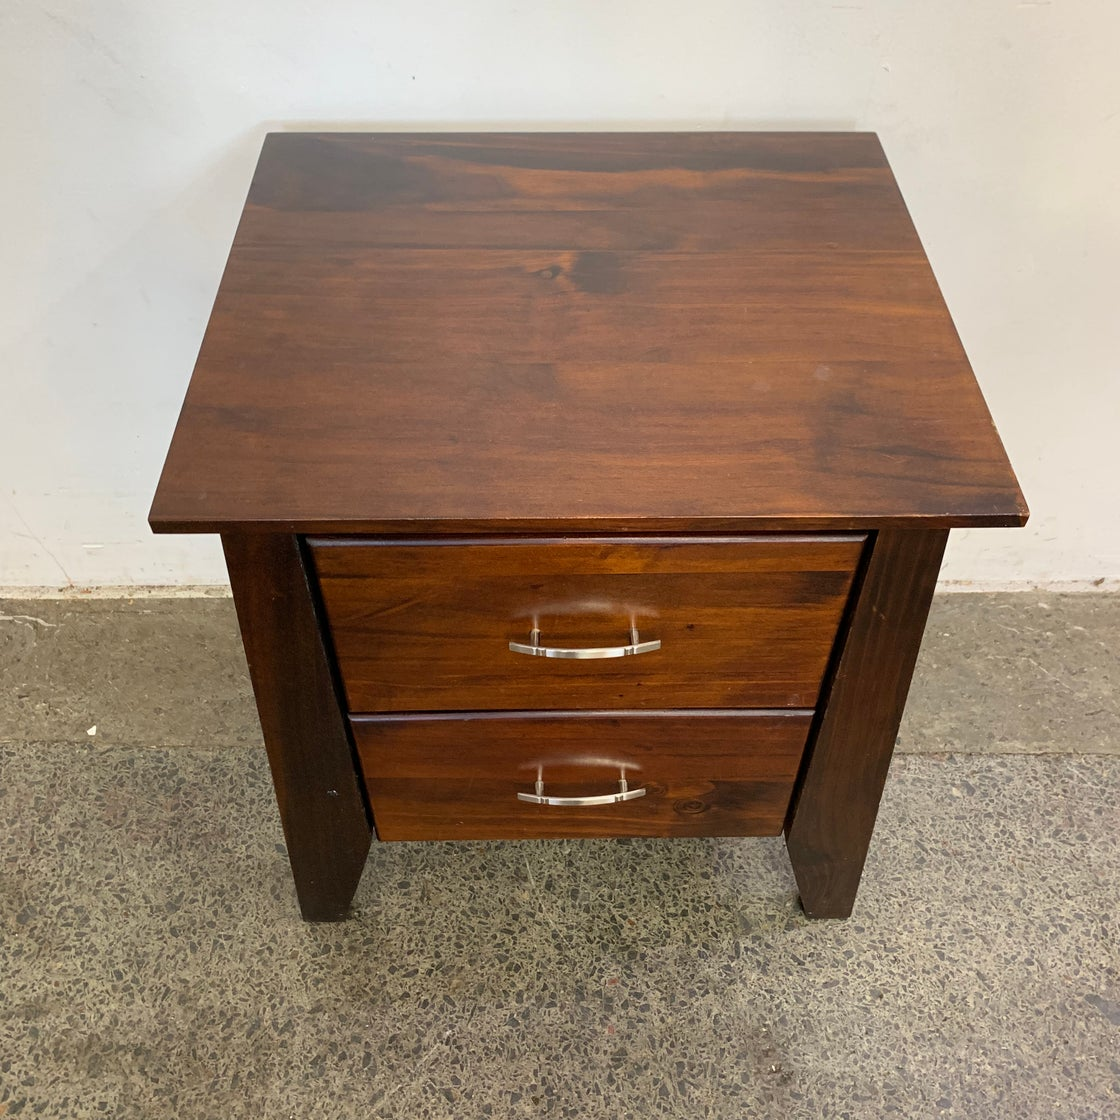 Image of DARK STAINED BEDSIDE